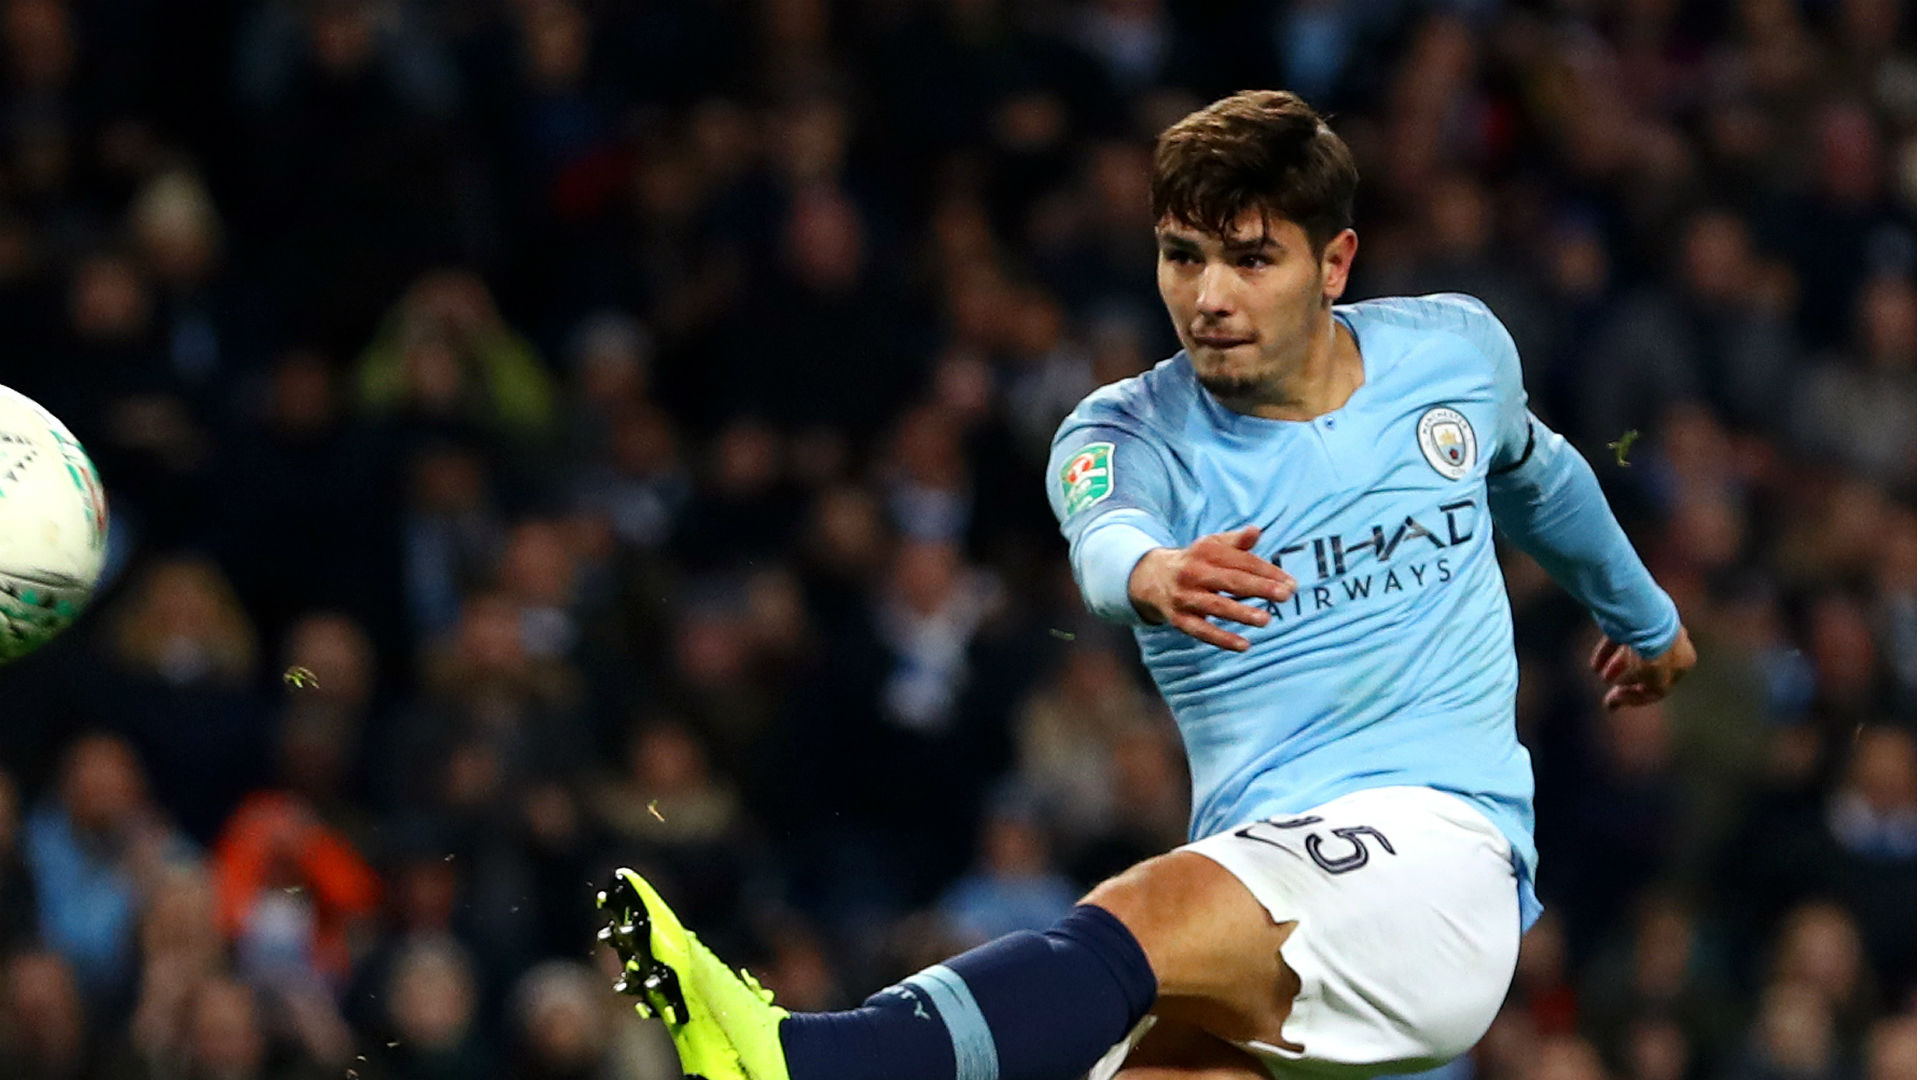 Brahim Diaz to join Real Madrid from Manchester City